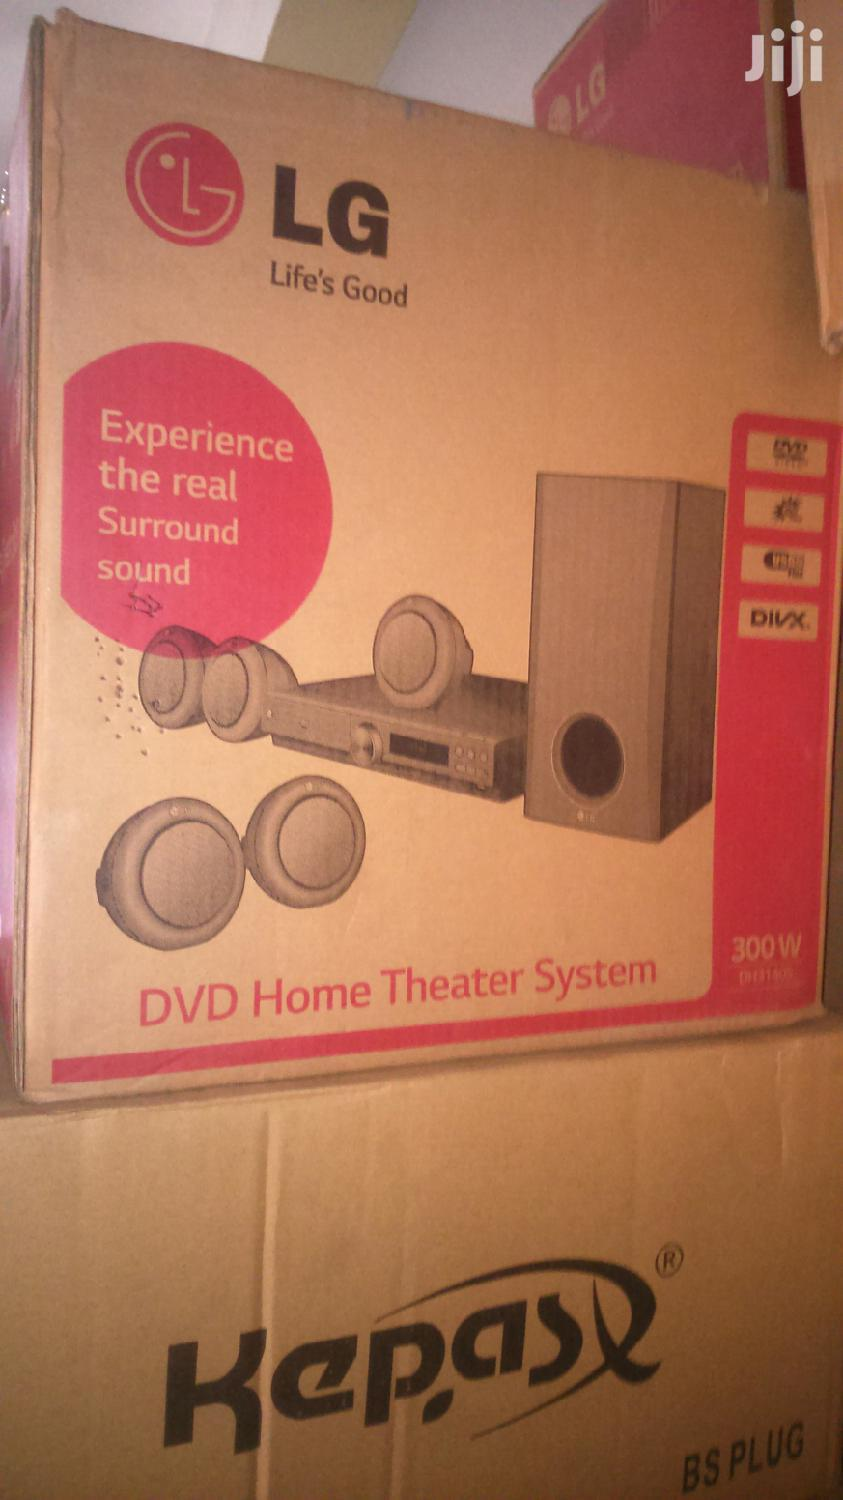 Archive: LG Dh3140s 300W DVD Home Theater System